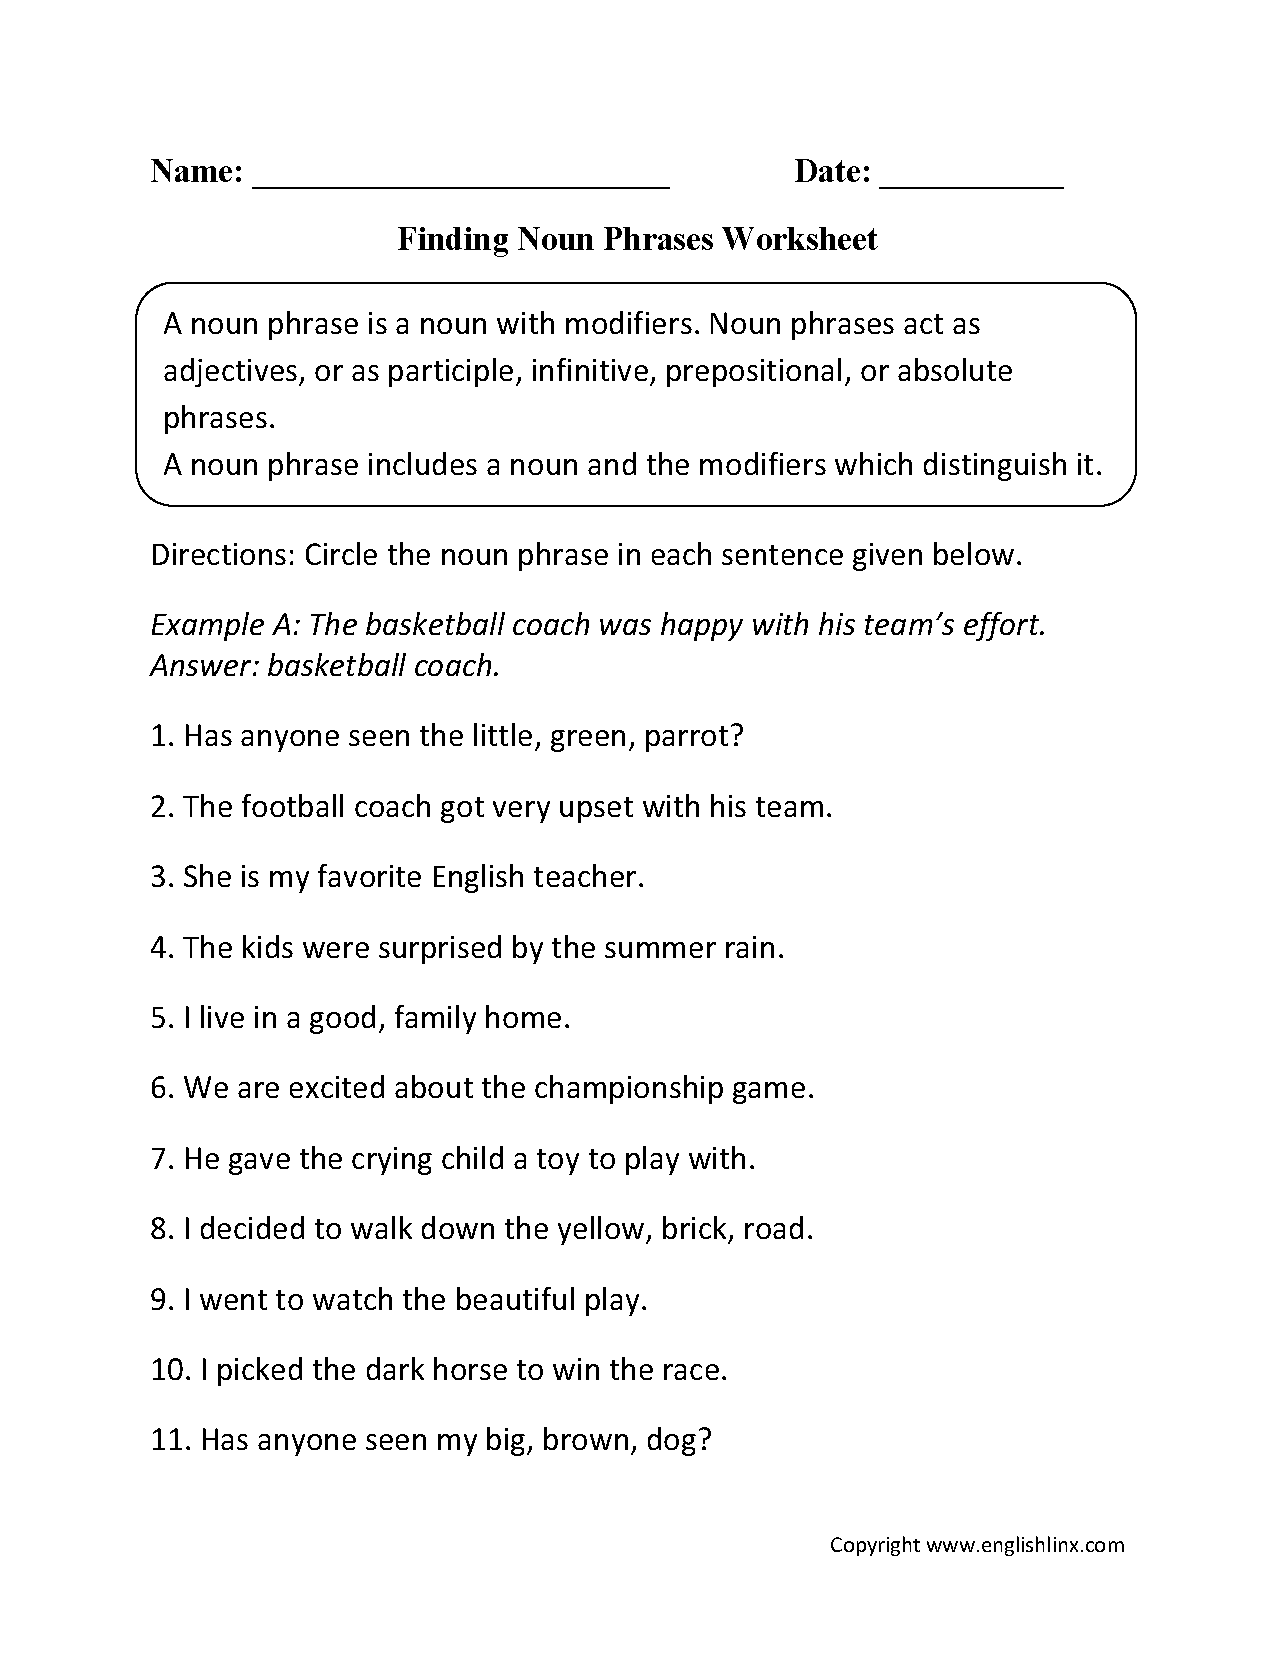 Noun Phrases Worksheets